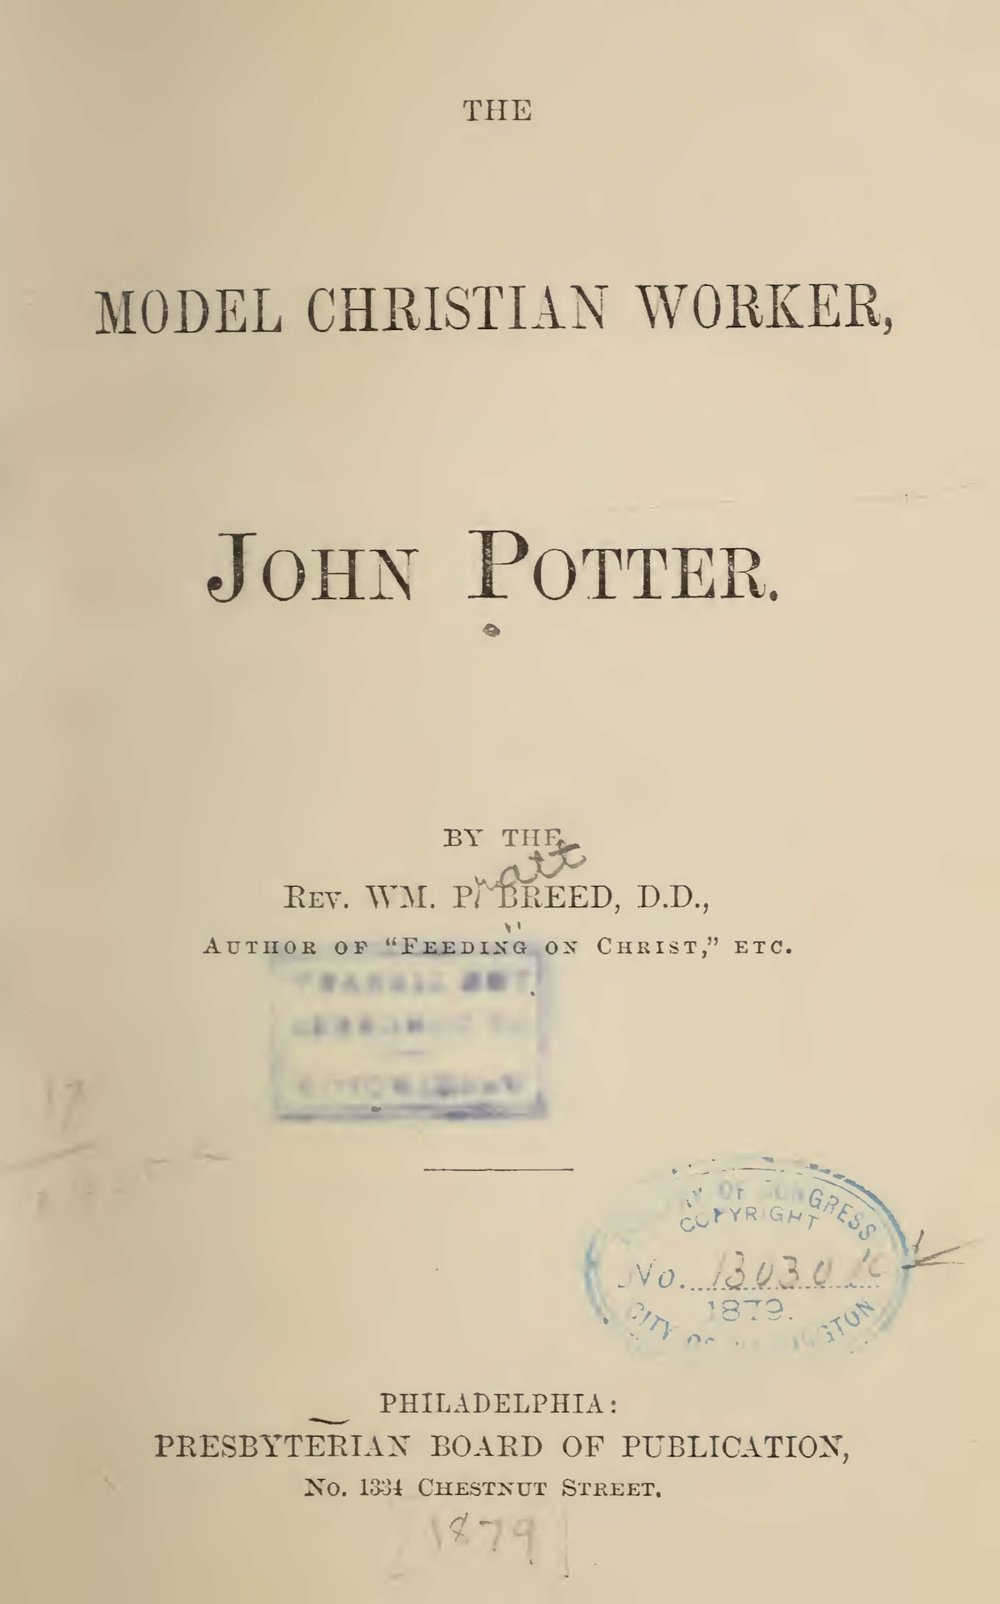 Breed, William Pratt, The Model Christian Worker Title Page.jpg